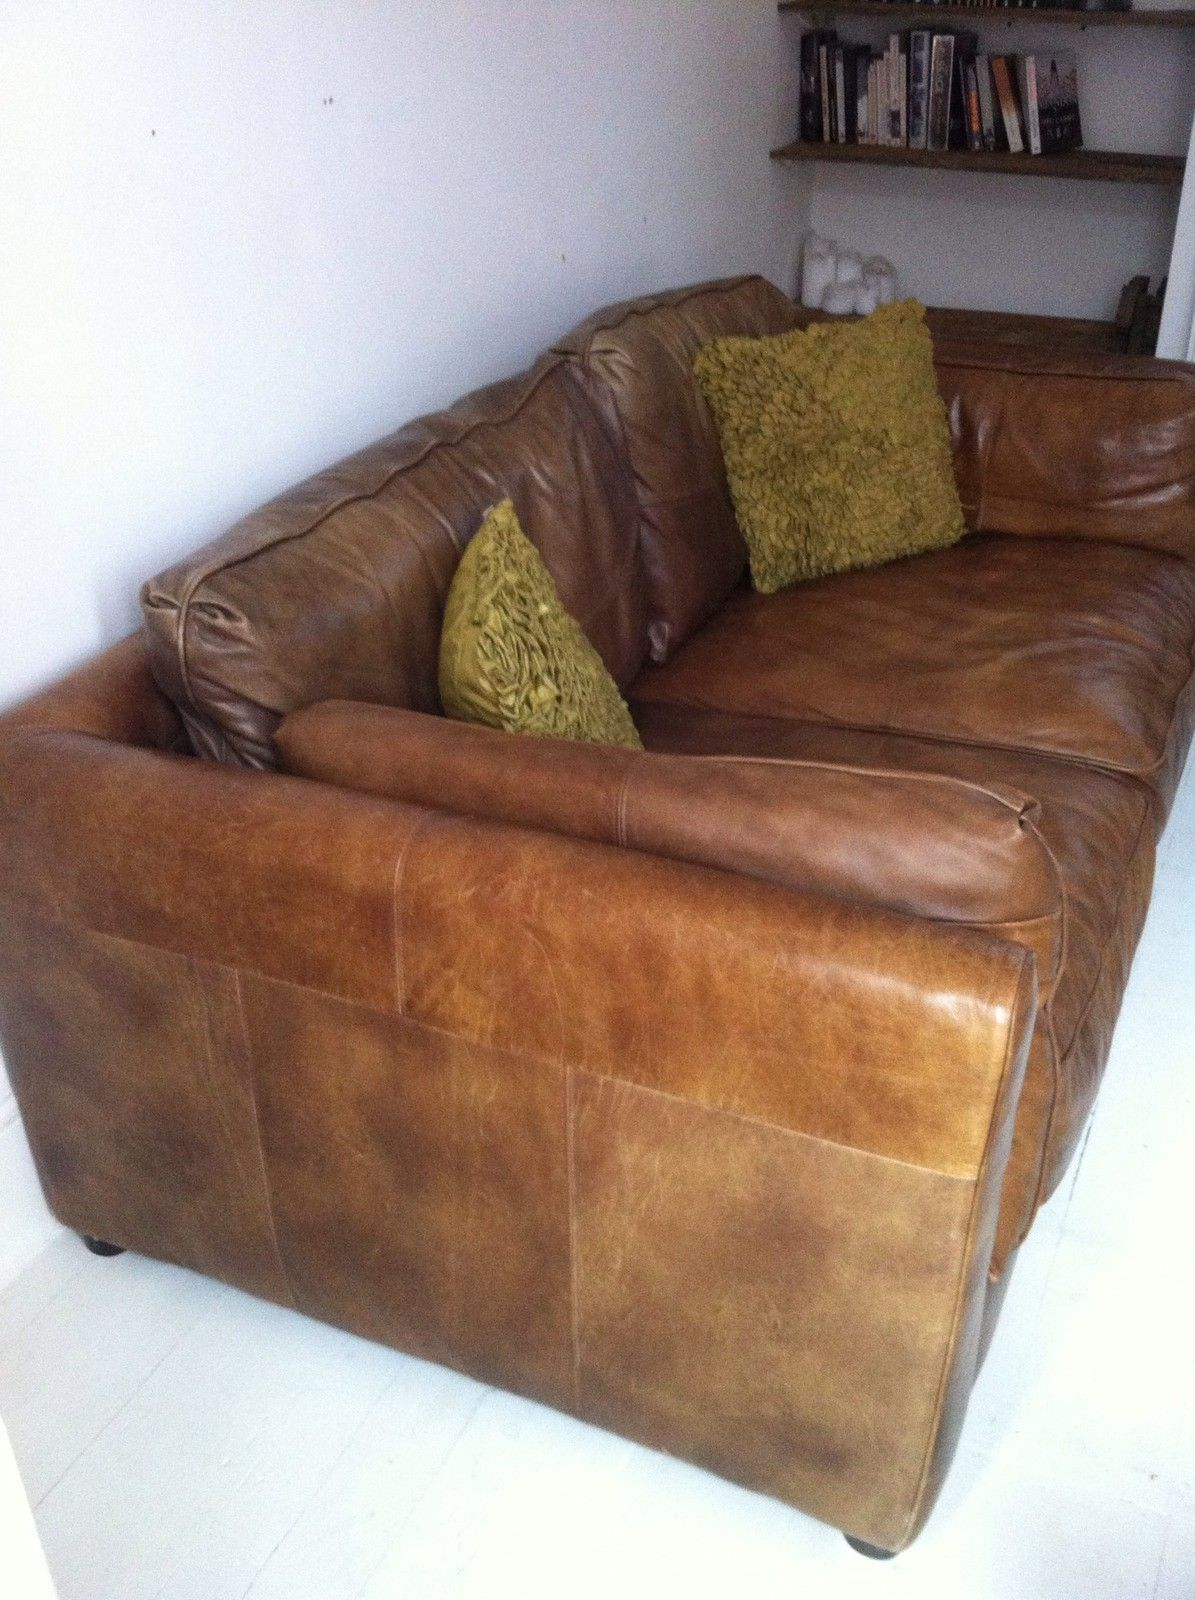 Brooklyn 3 Seater Sofa Freedom New Jersey Vintage Antique Style Tan Leather Living Room